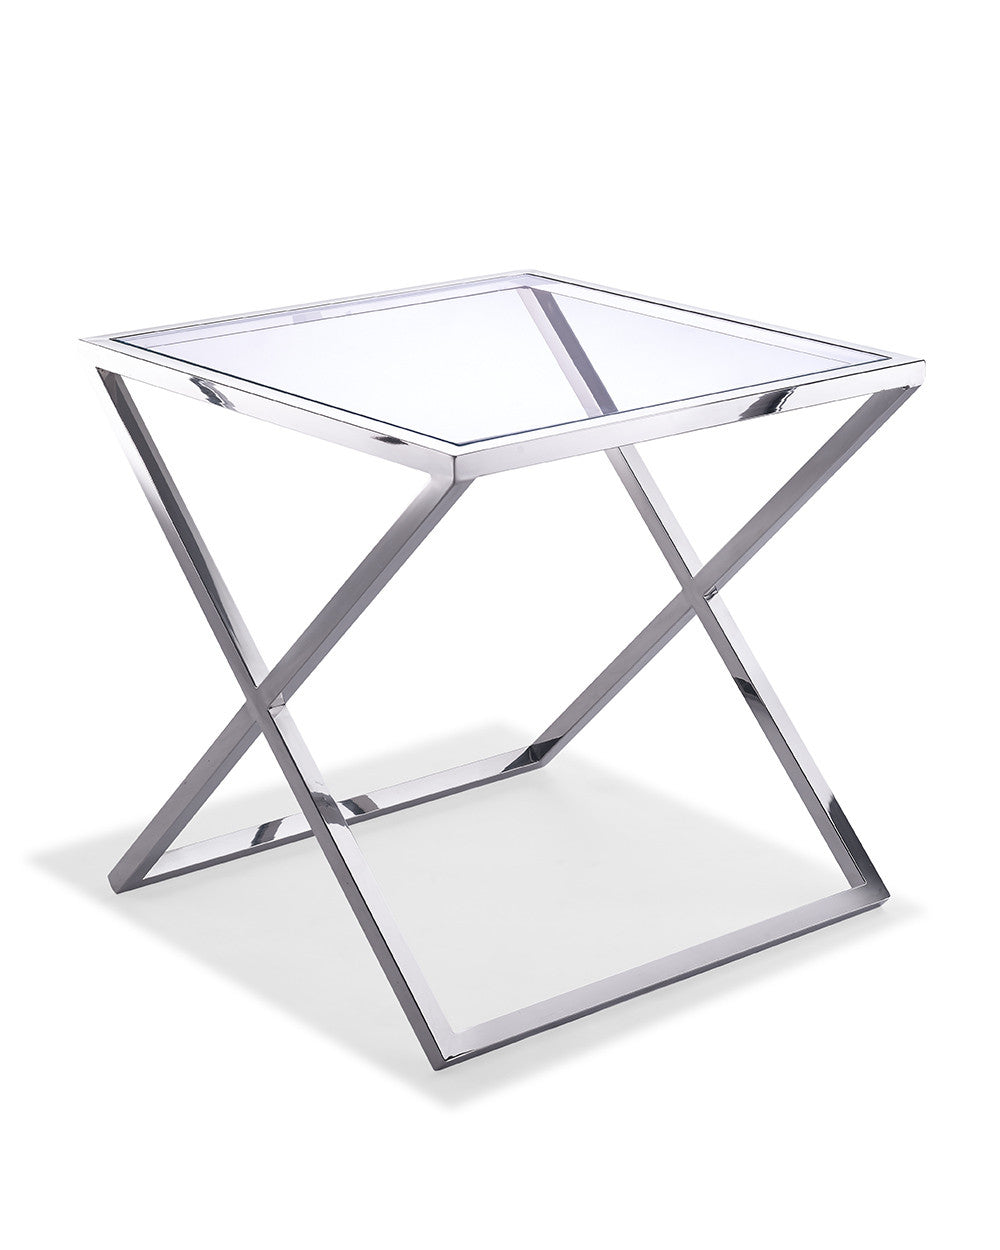 Ricci Side Table, clear glass, stainless steel base